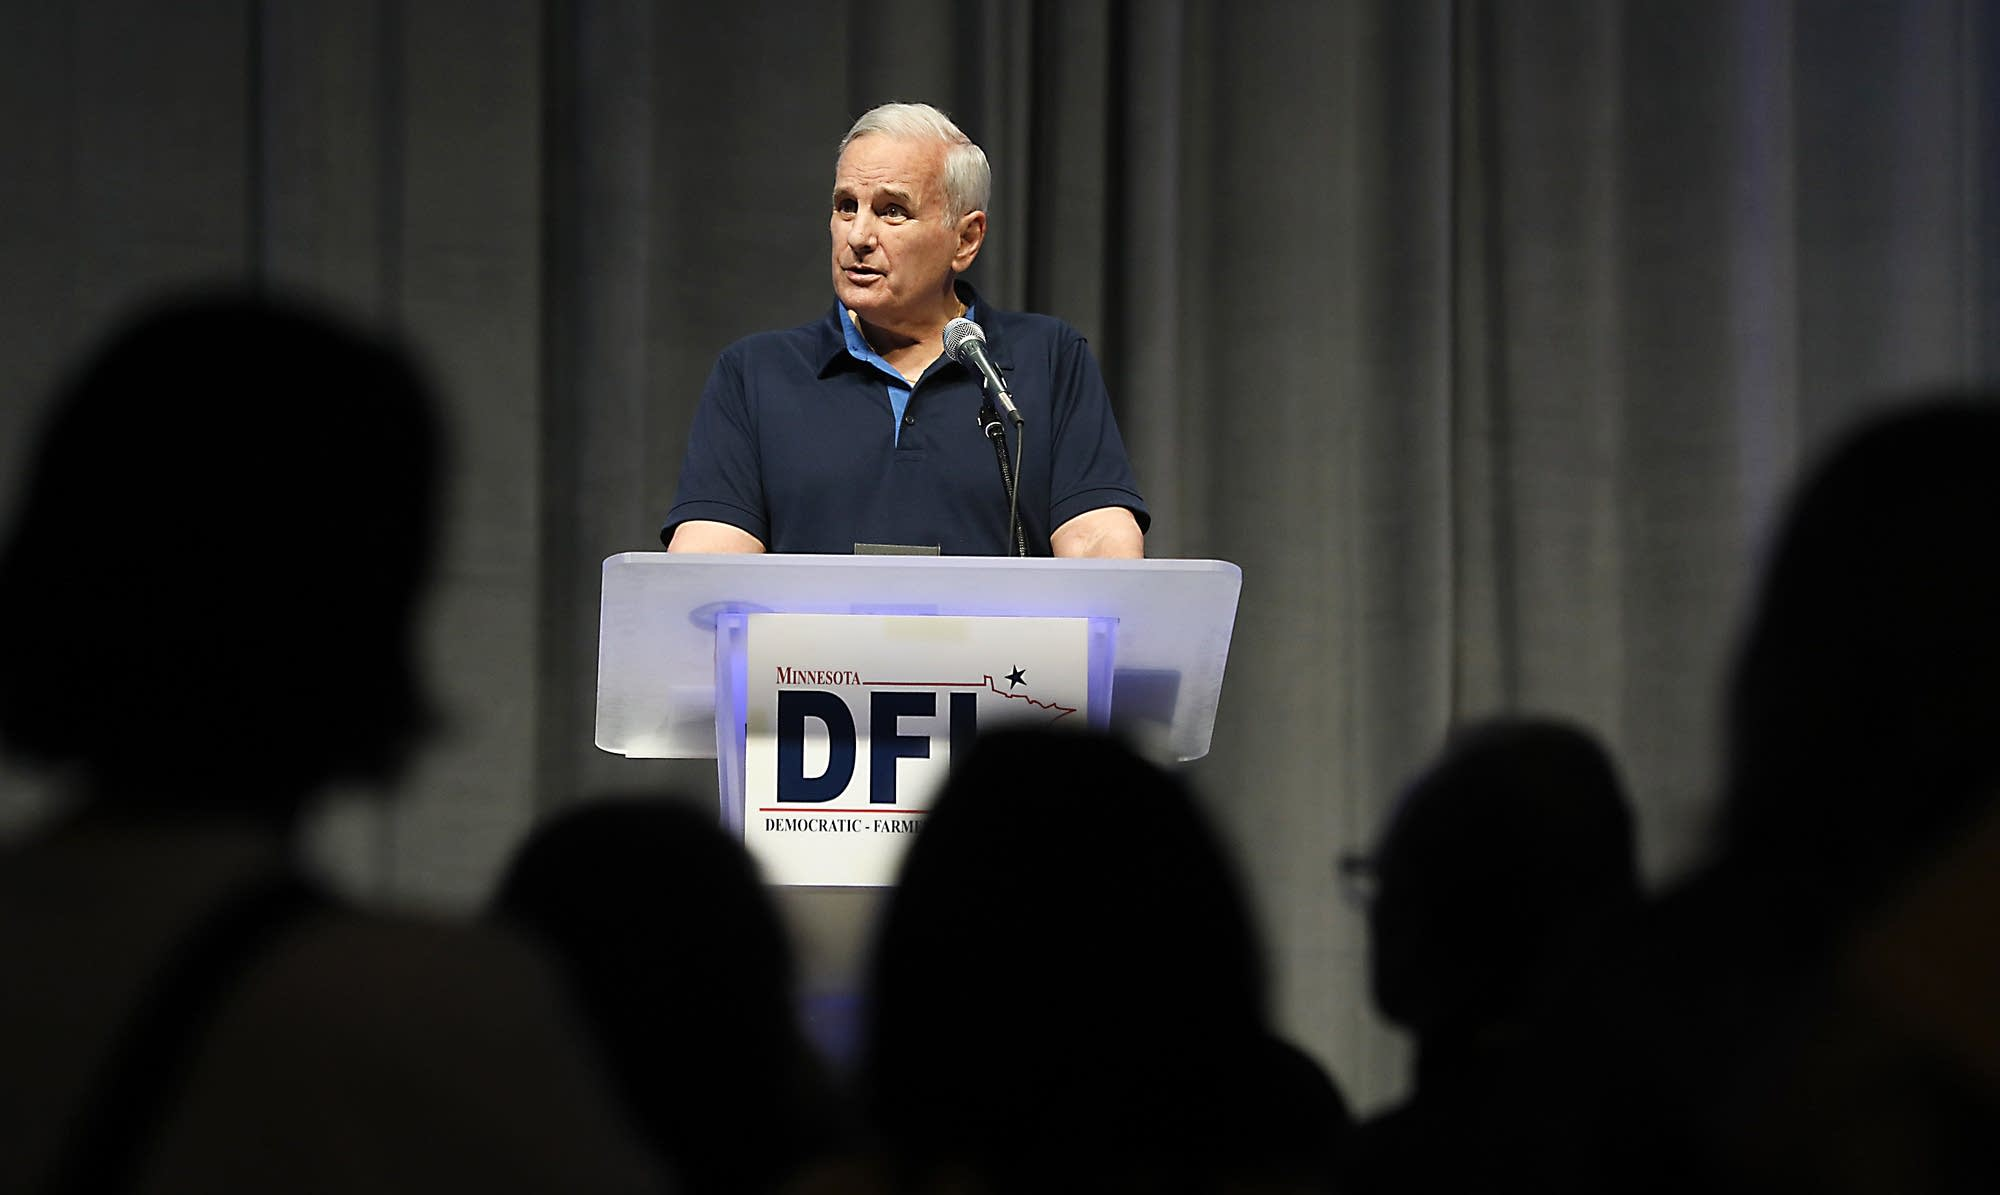 Gov. Mark Dayton speaks Saturday afternoon at the state DFL convention.